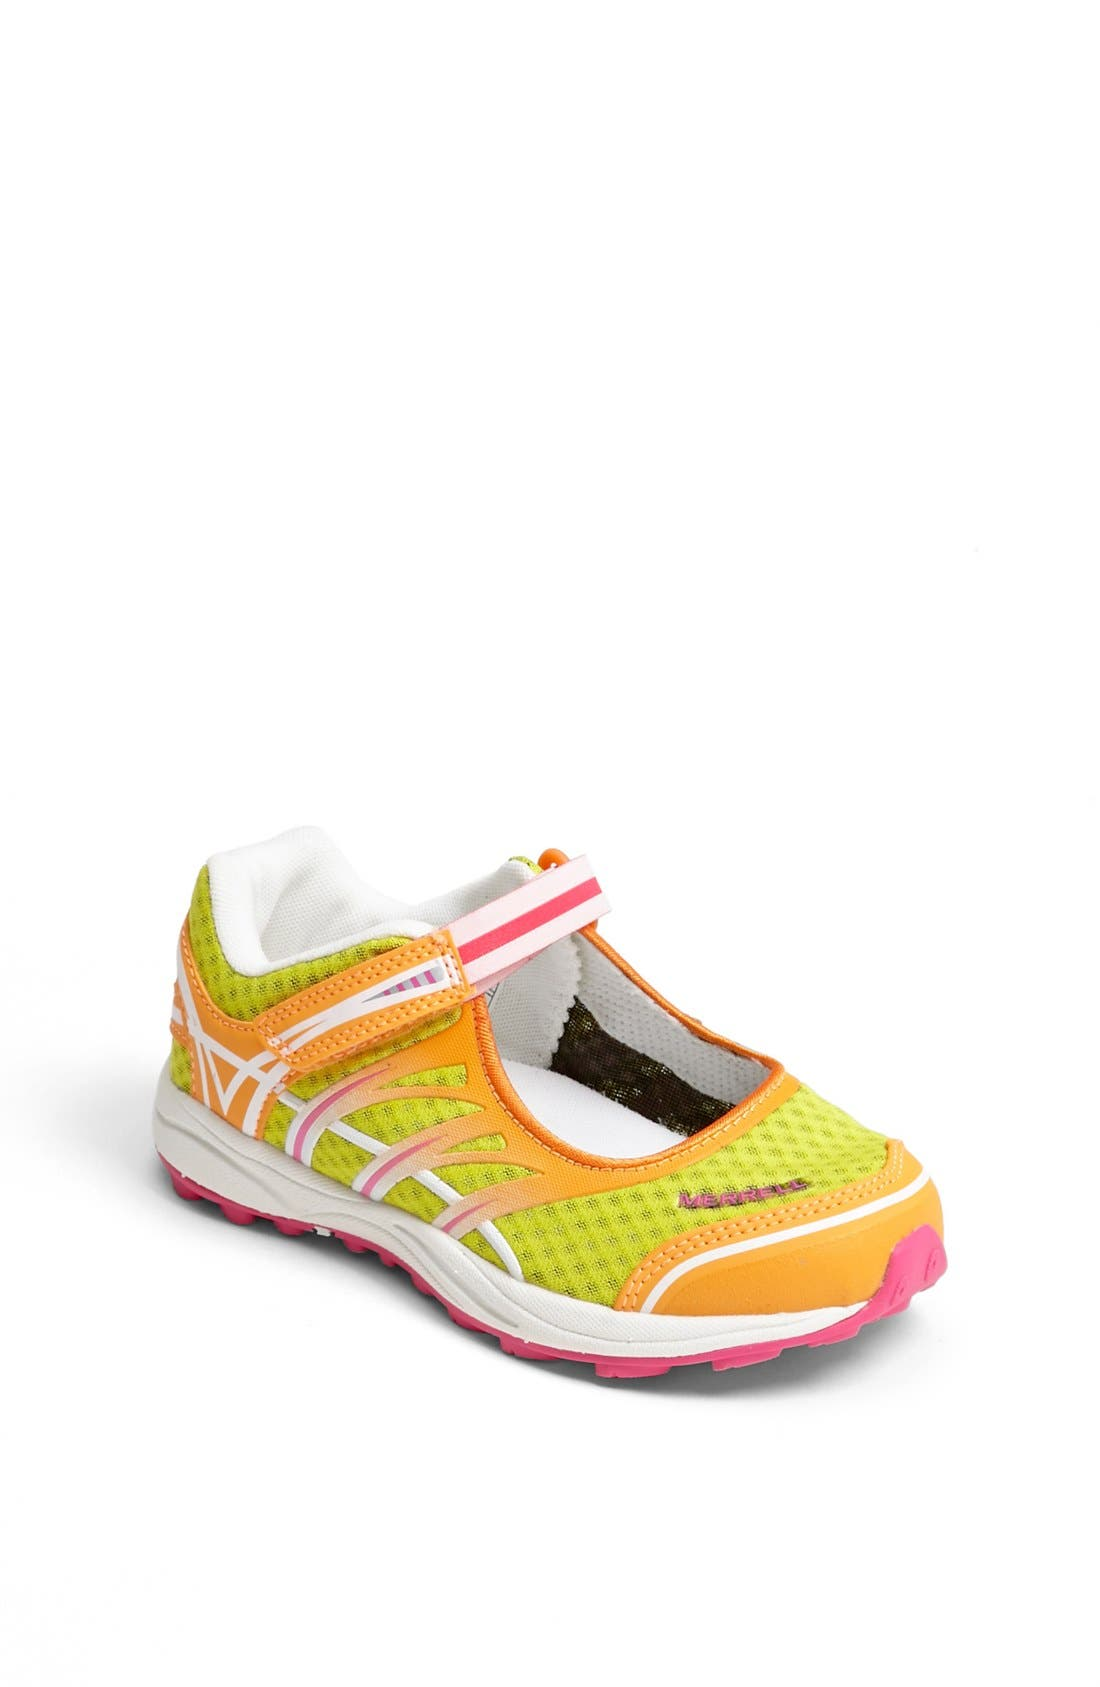 Main Image - Merrell 'Mix Master Jam' Mary Jane Sneaker (Toddler, Little Kid & Big Kid)